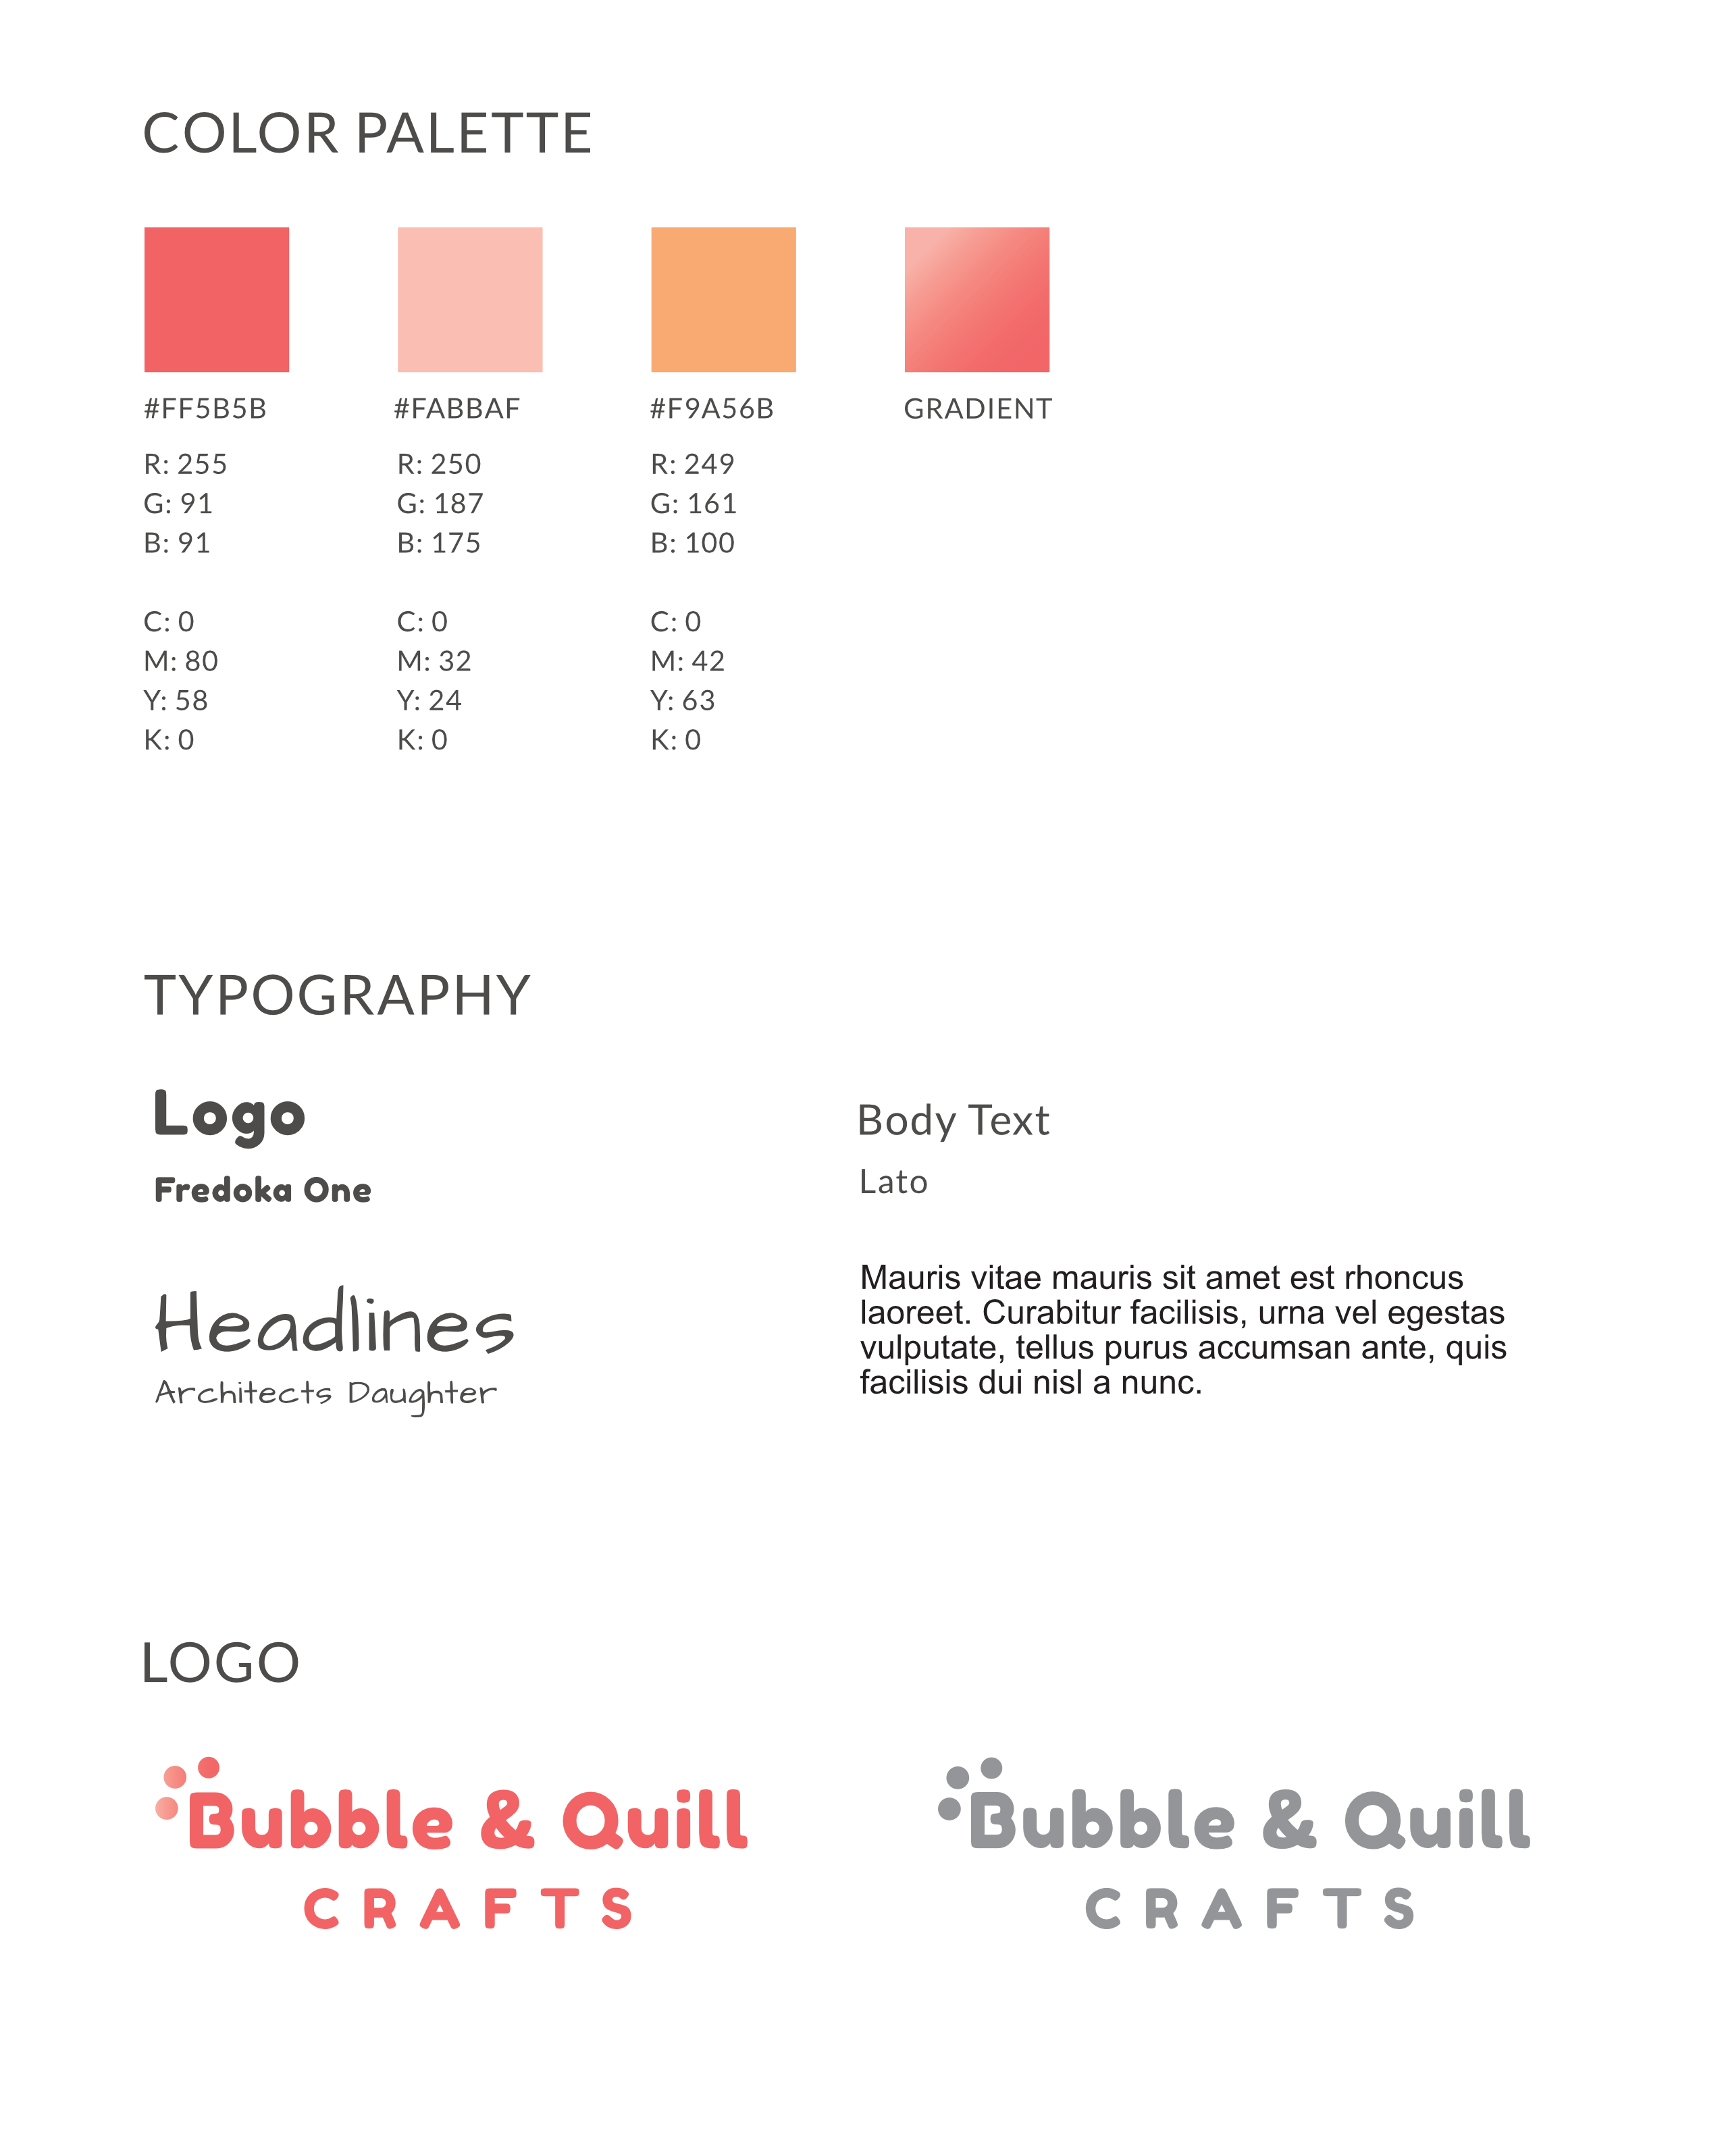 Bubble & Quill Crafts brand style guide